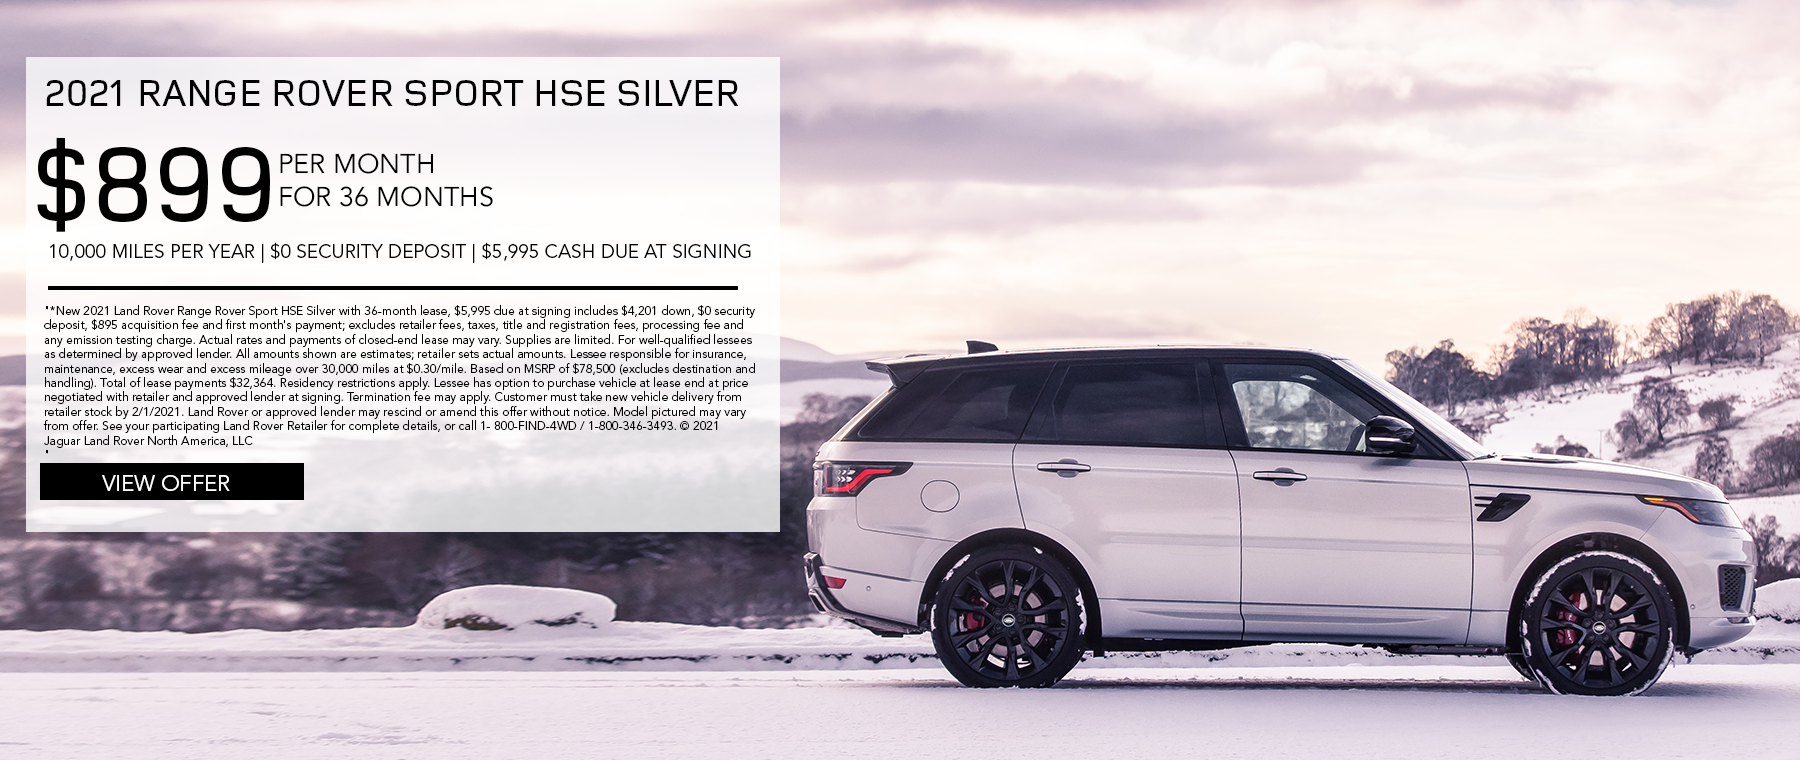 2021 RANGE ROVER SPORT HSE SILVER. $899 PER MONTH. 36 MONTH LEASE TERM. $5,995 CASH DUE AT SIGNING. $0 SECURITY DEPOSIT. 10,000 MILES PER YEAR. EXCLUDES RETAILER FEES, TAXES, TITLE AND REGISTRATION FEES, PROCESSING FEE AND ANY EMISSION TESTING CHARGE. ENDS 2/1/2021.